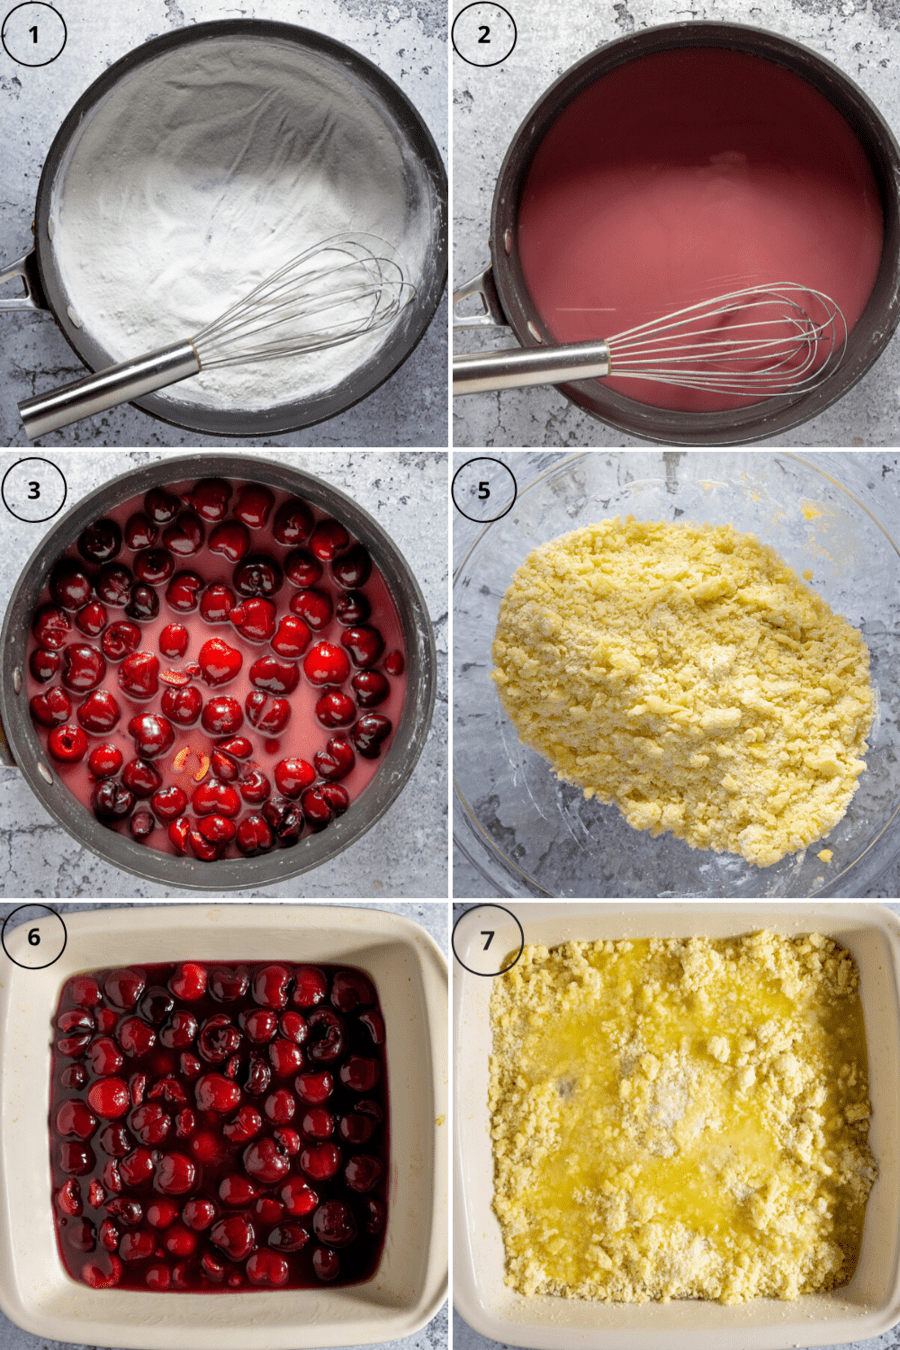 the steps for making cherry cobbler, from cooking the cherries wine sugar and cornstarch in a saucepan to making the cobbler topping and assembling it in a 8 by 8 baking dish.